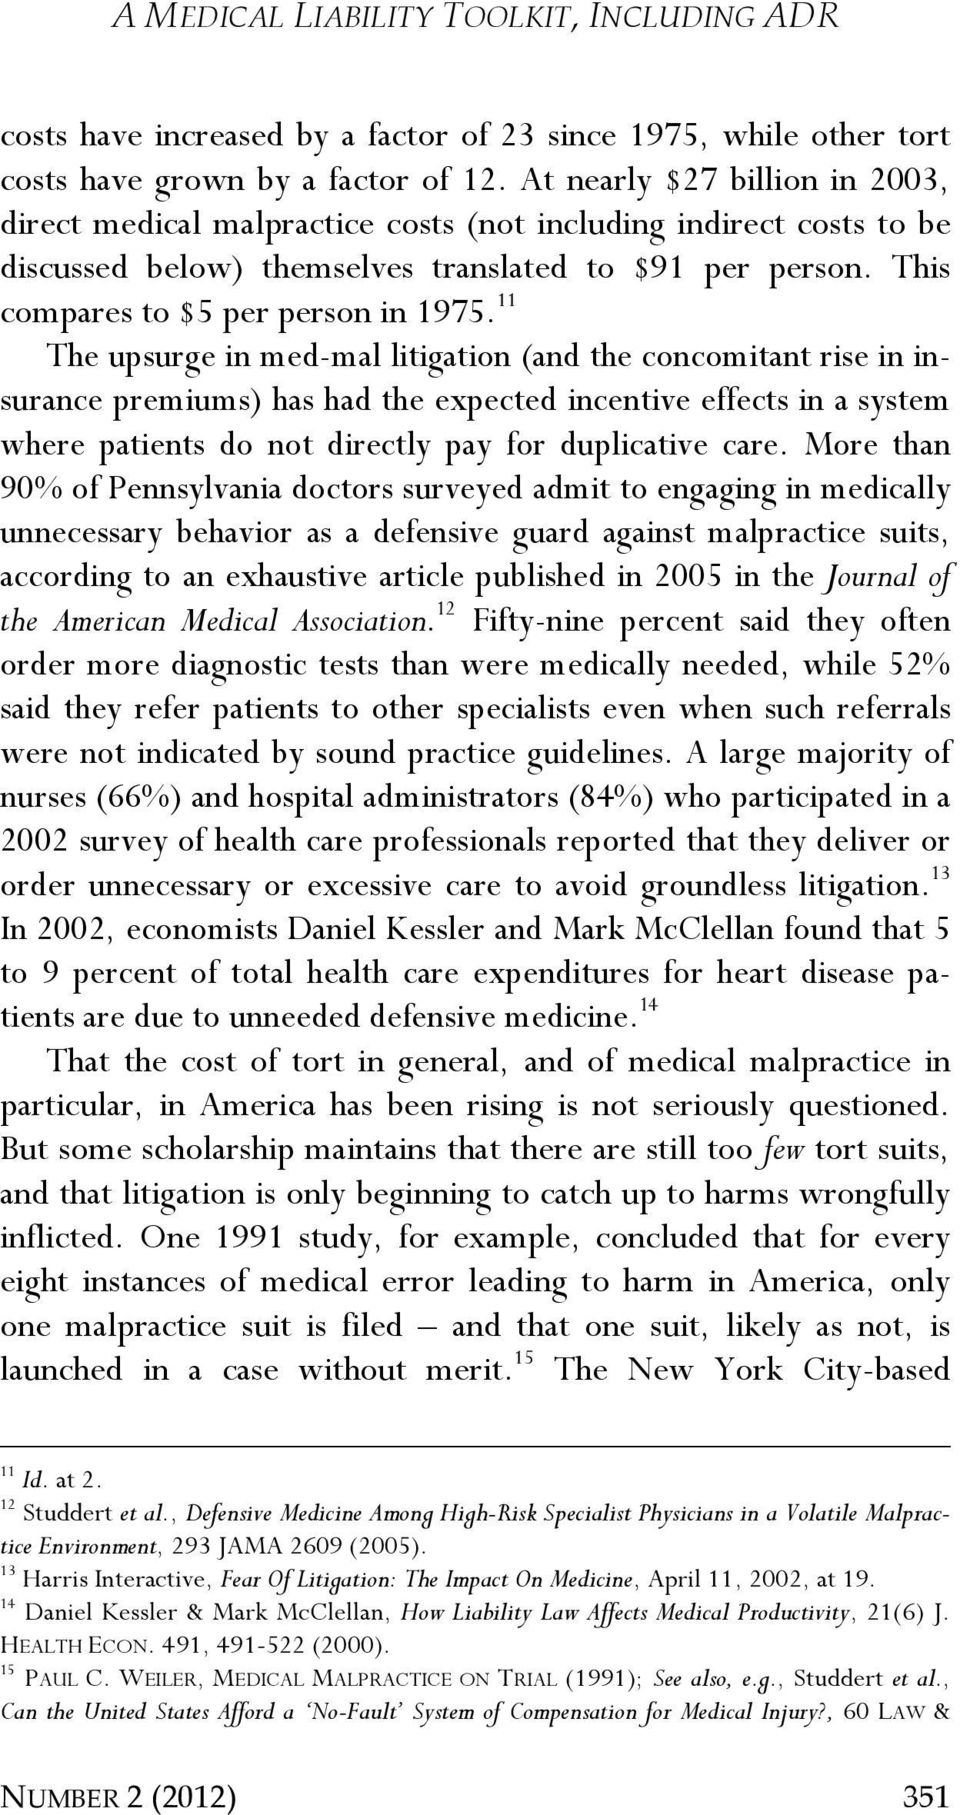 11 The upsurge in med-mal litigation (and the concomitant rise in insurance premiums) has had the expected incentive effects in a system where patients do not directly pay for duplicative care.